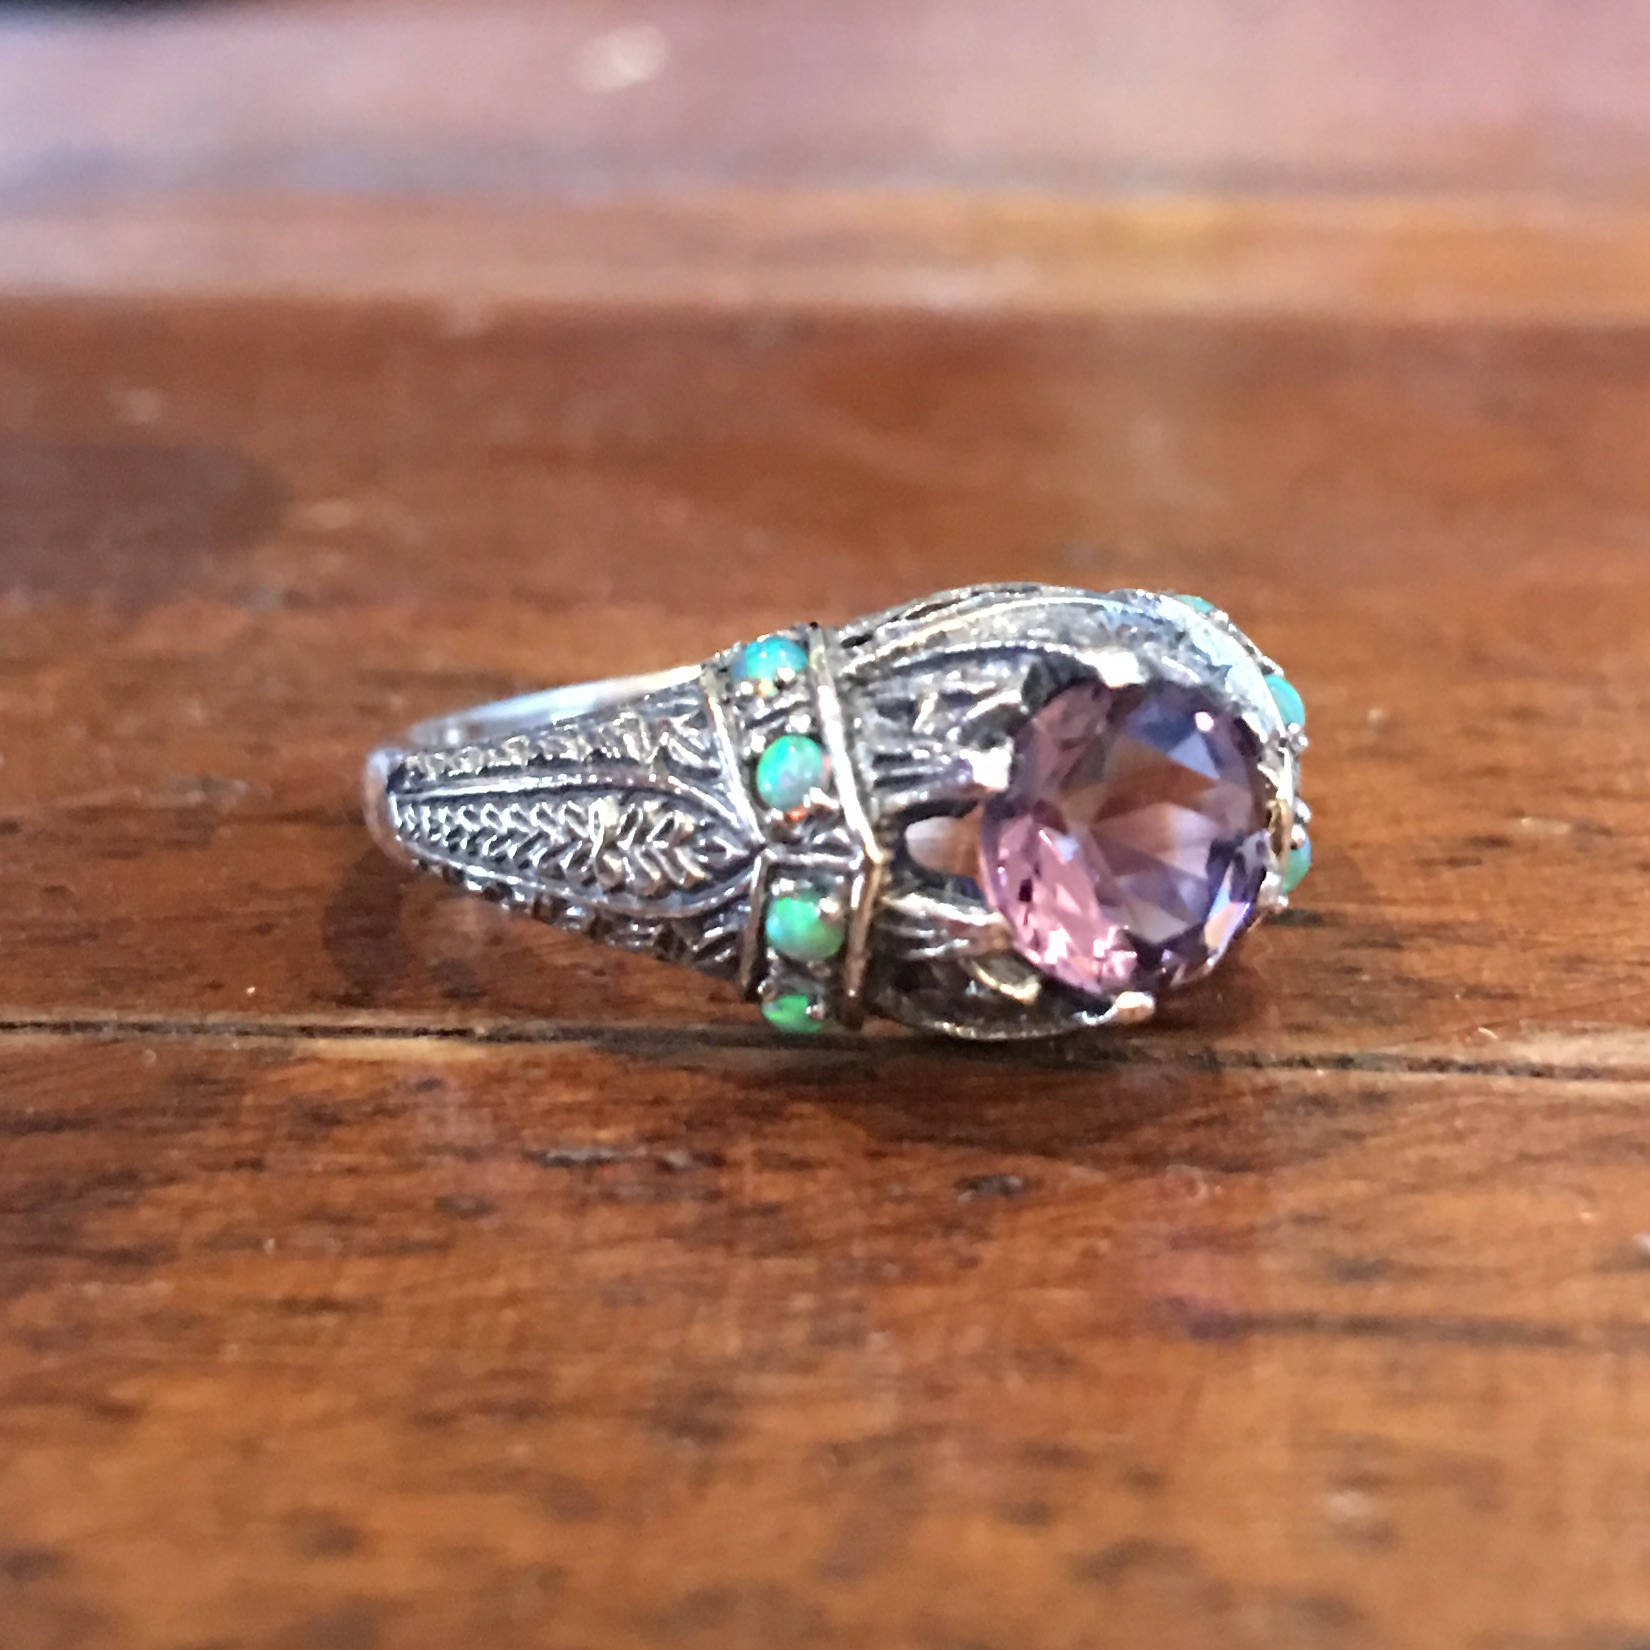 Amethyst and Fire Opal Art Deco Style Ring in Sterling Silver